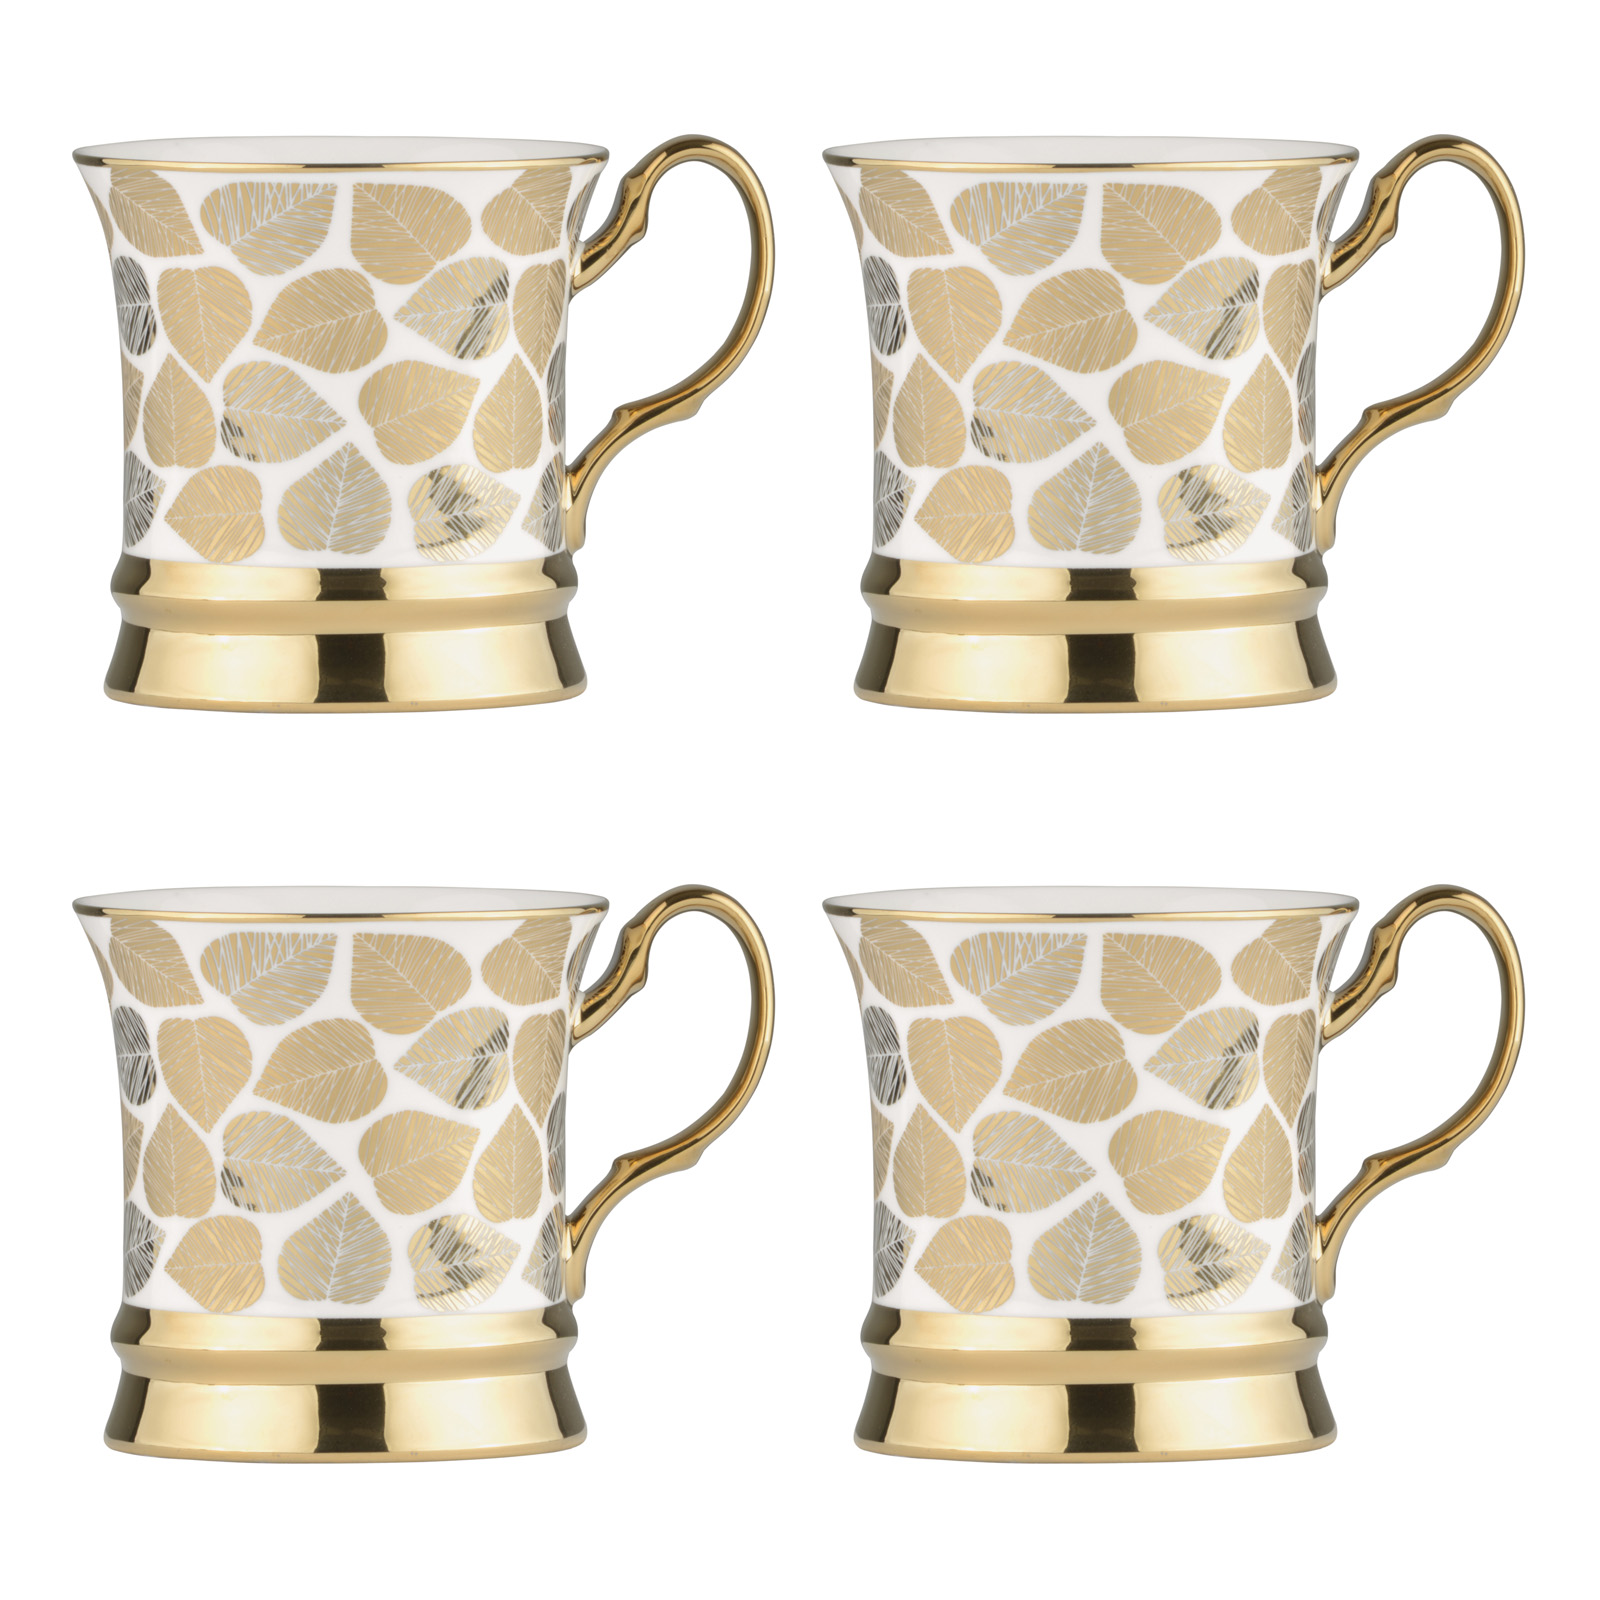 Set of 4 Leaf Gold Mugs